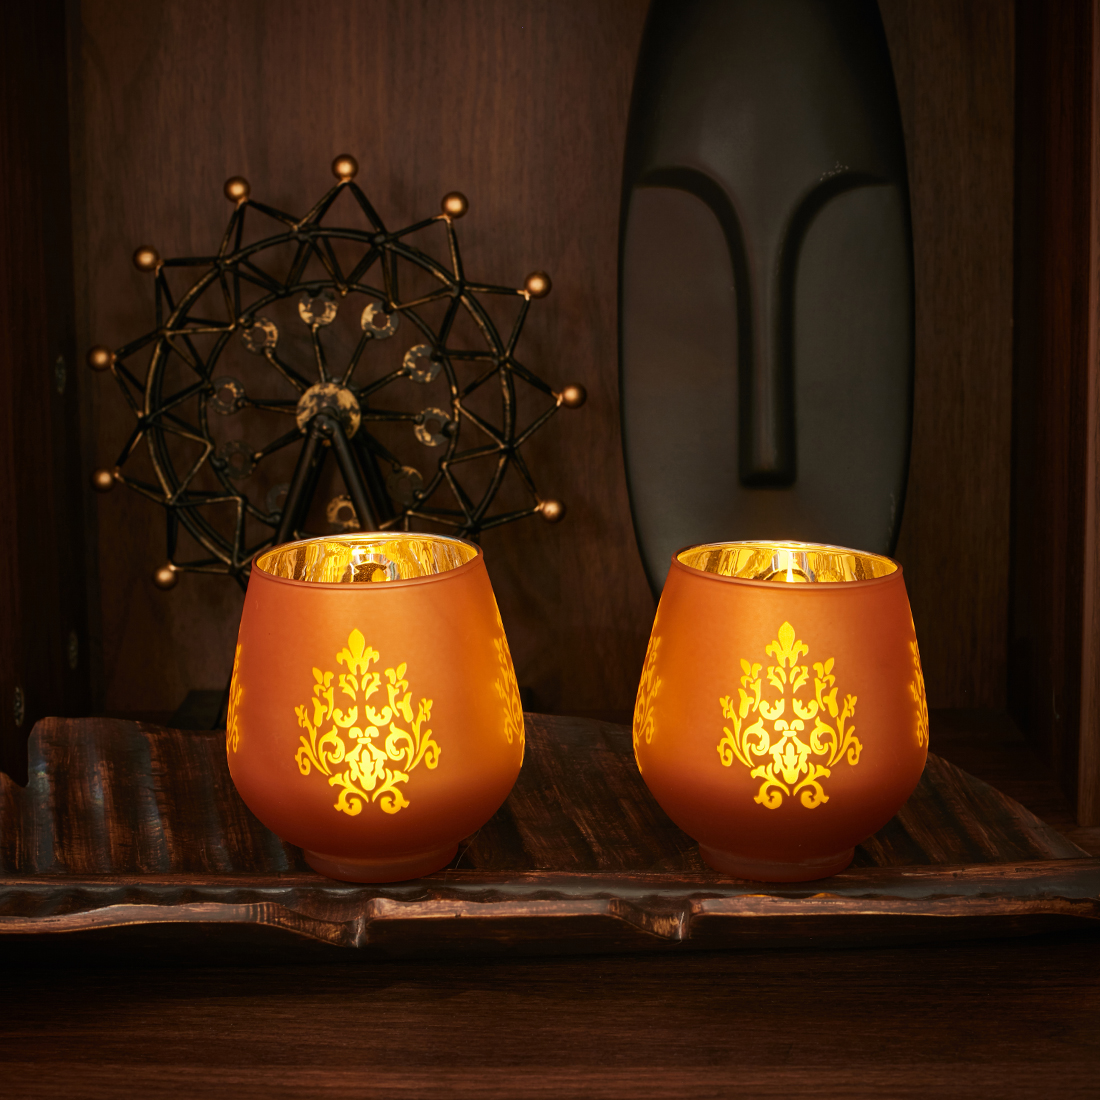 Zahara Set Of 2 Flower Etched Glass Candle Holders in ORANGE Colour by Living Essence